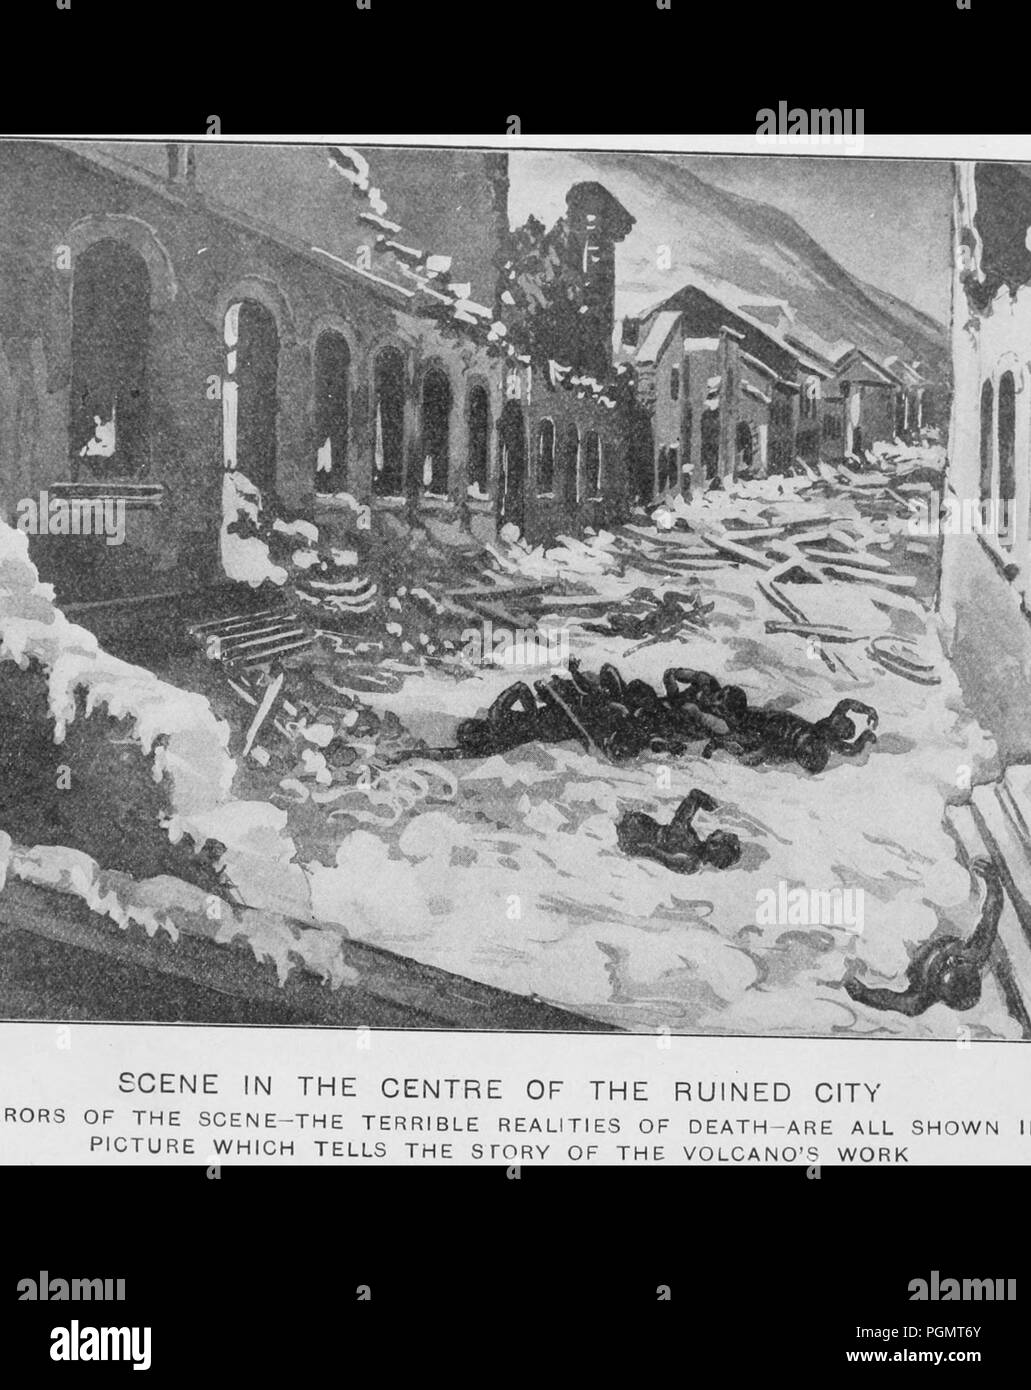 Black and white illustration depicting human corpses and building debris, mired in ash and lava in the center of a city street in Pompeii, Italy, with damaged buildings on either side, following the eruption of Mount Vesuvius in 79 CE, 1906. Courtesy Internet Archive. () - Stock Image